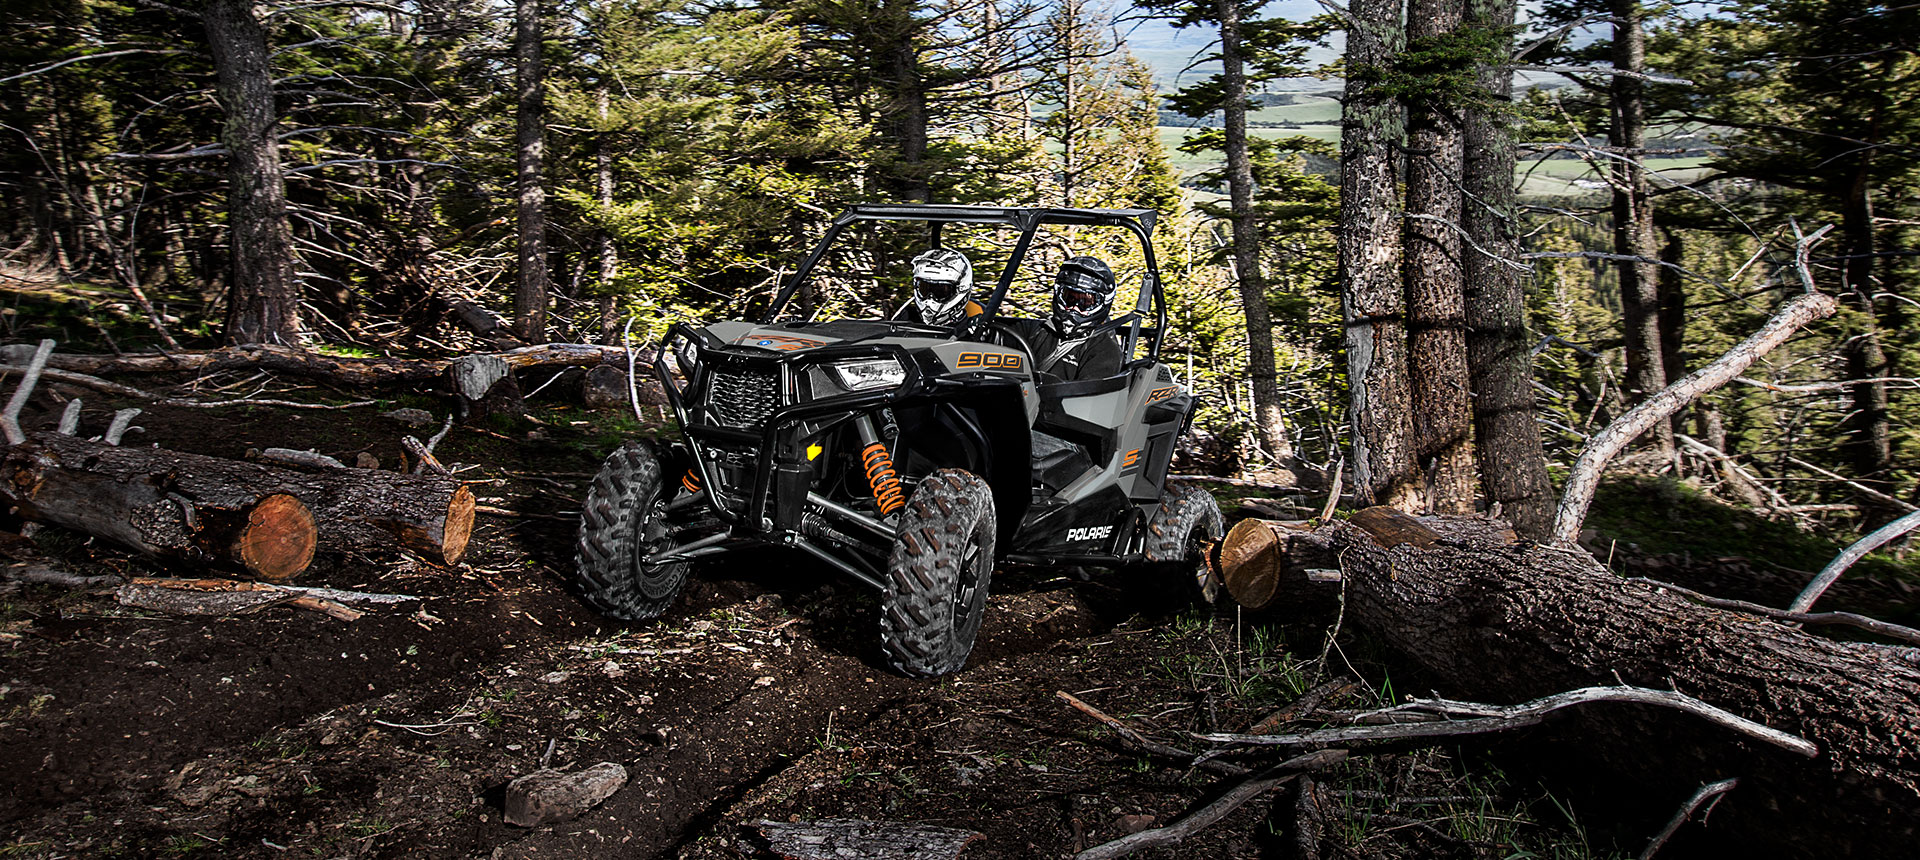 2019 Polaris RZR S 900 EPS in Castaic, California - Photo 2